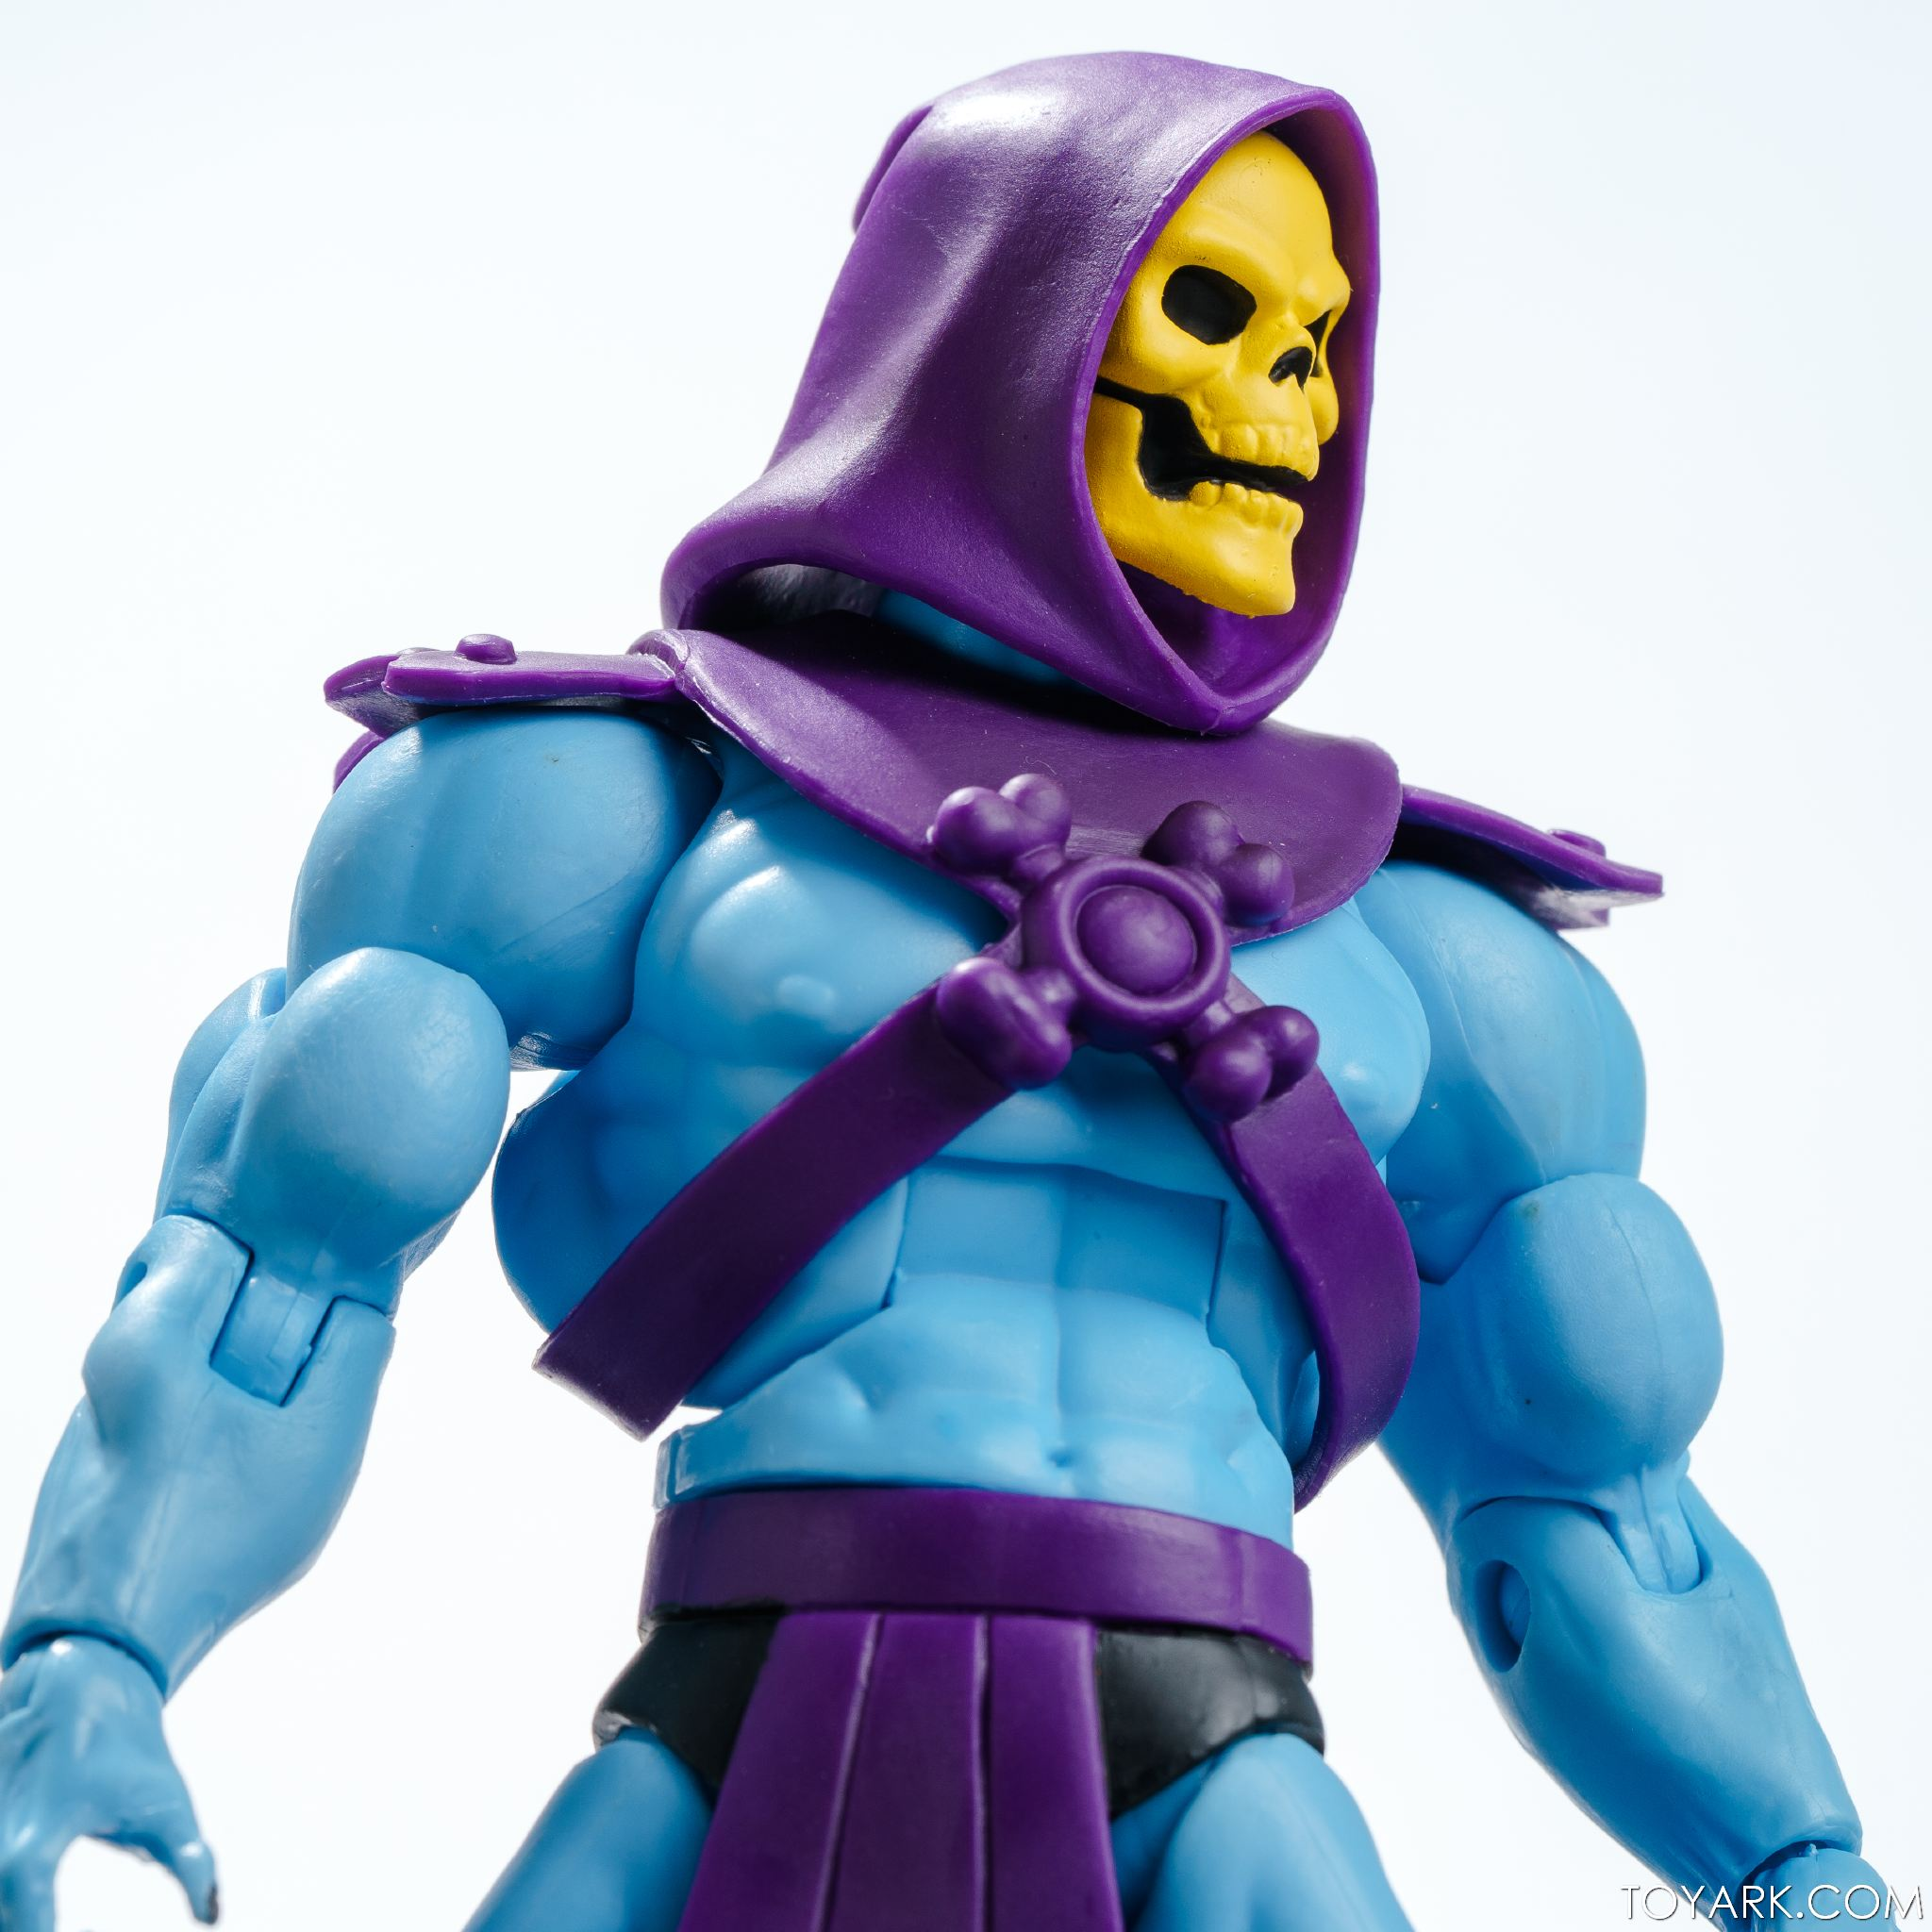 MOTUC 2 Skeletor 09